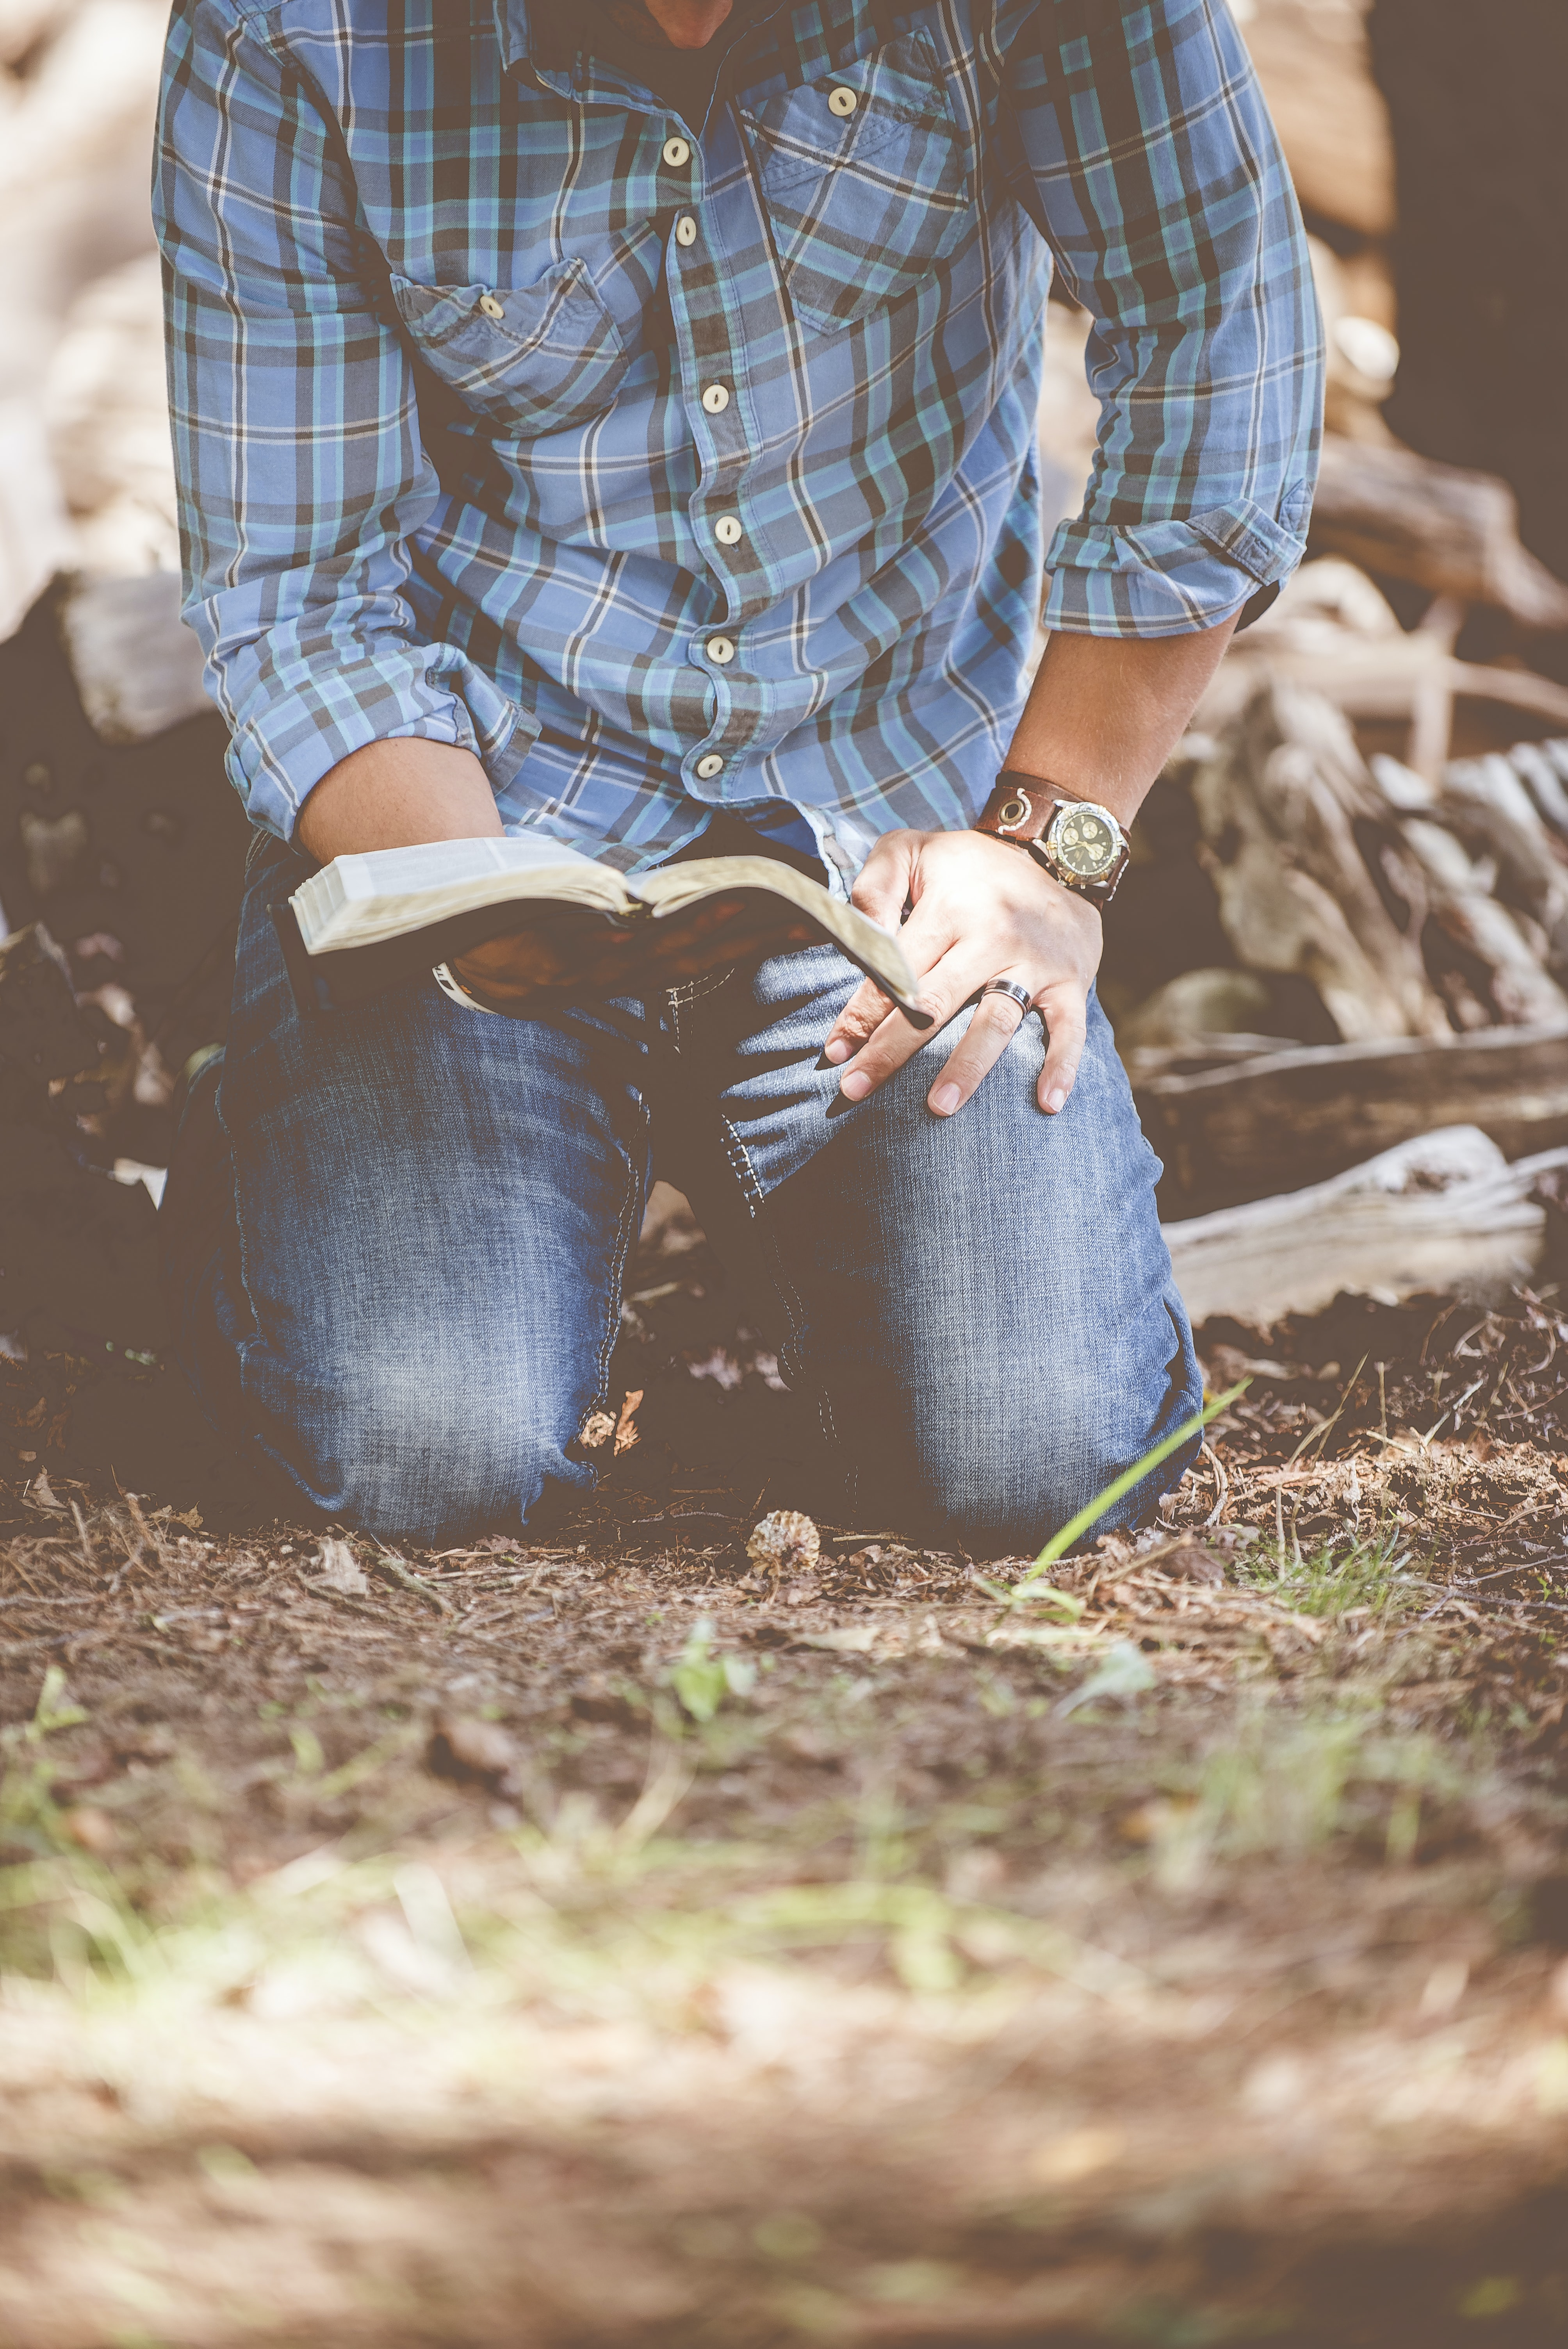 person reading book while kneeling